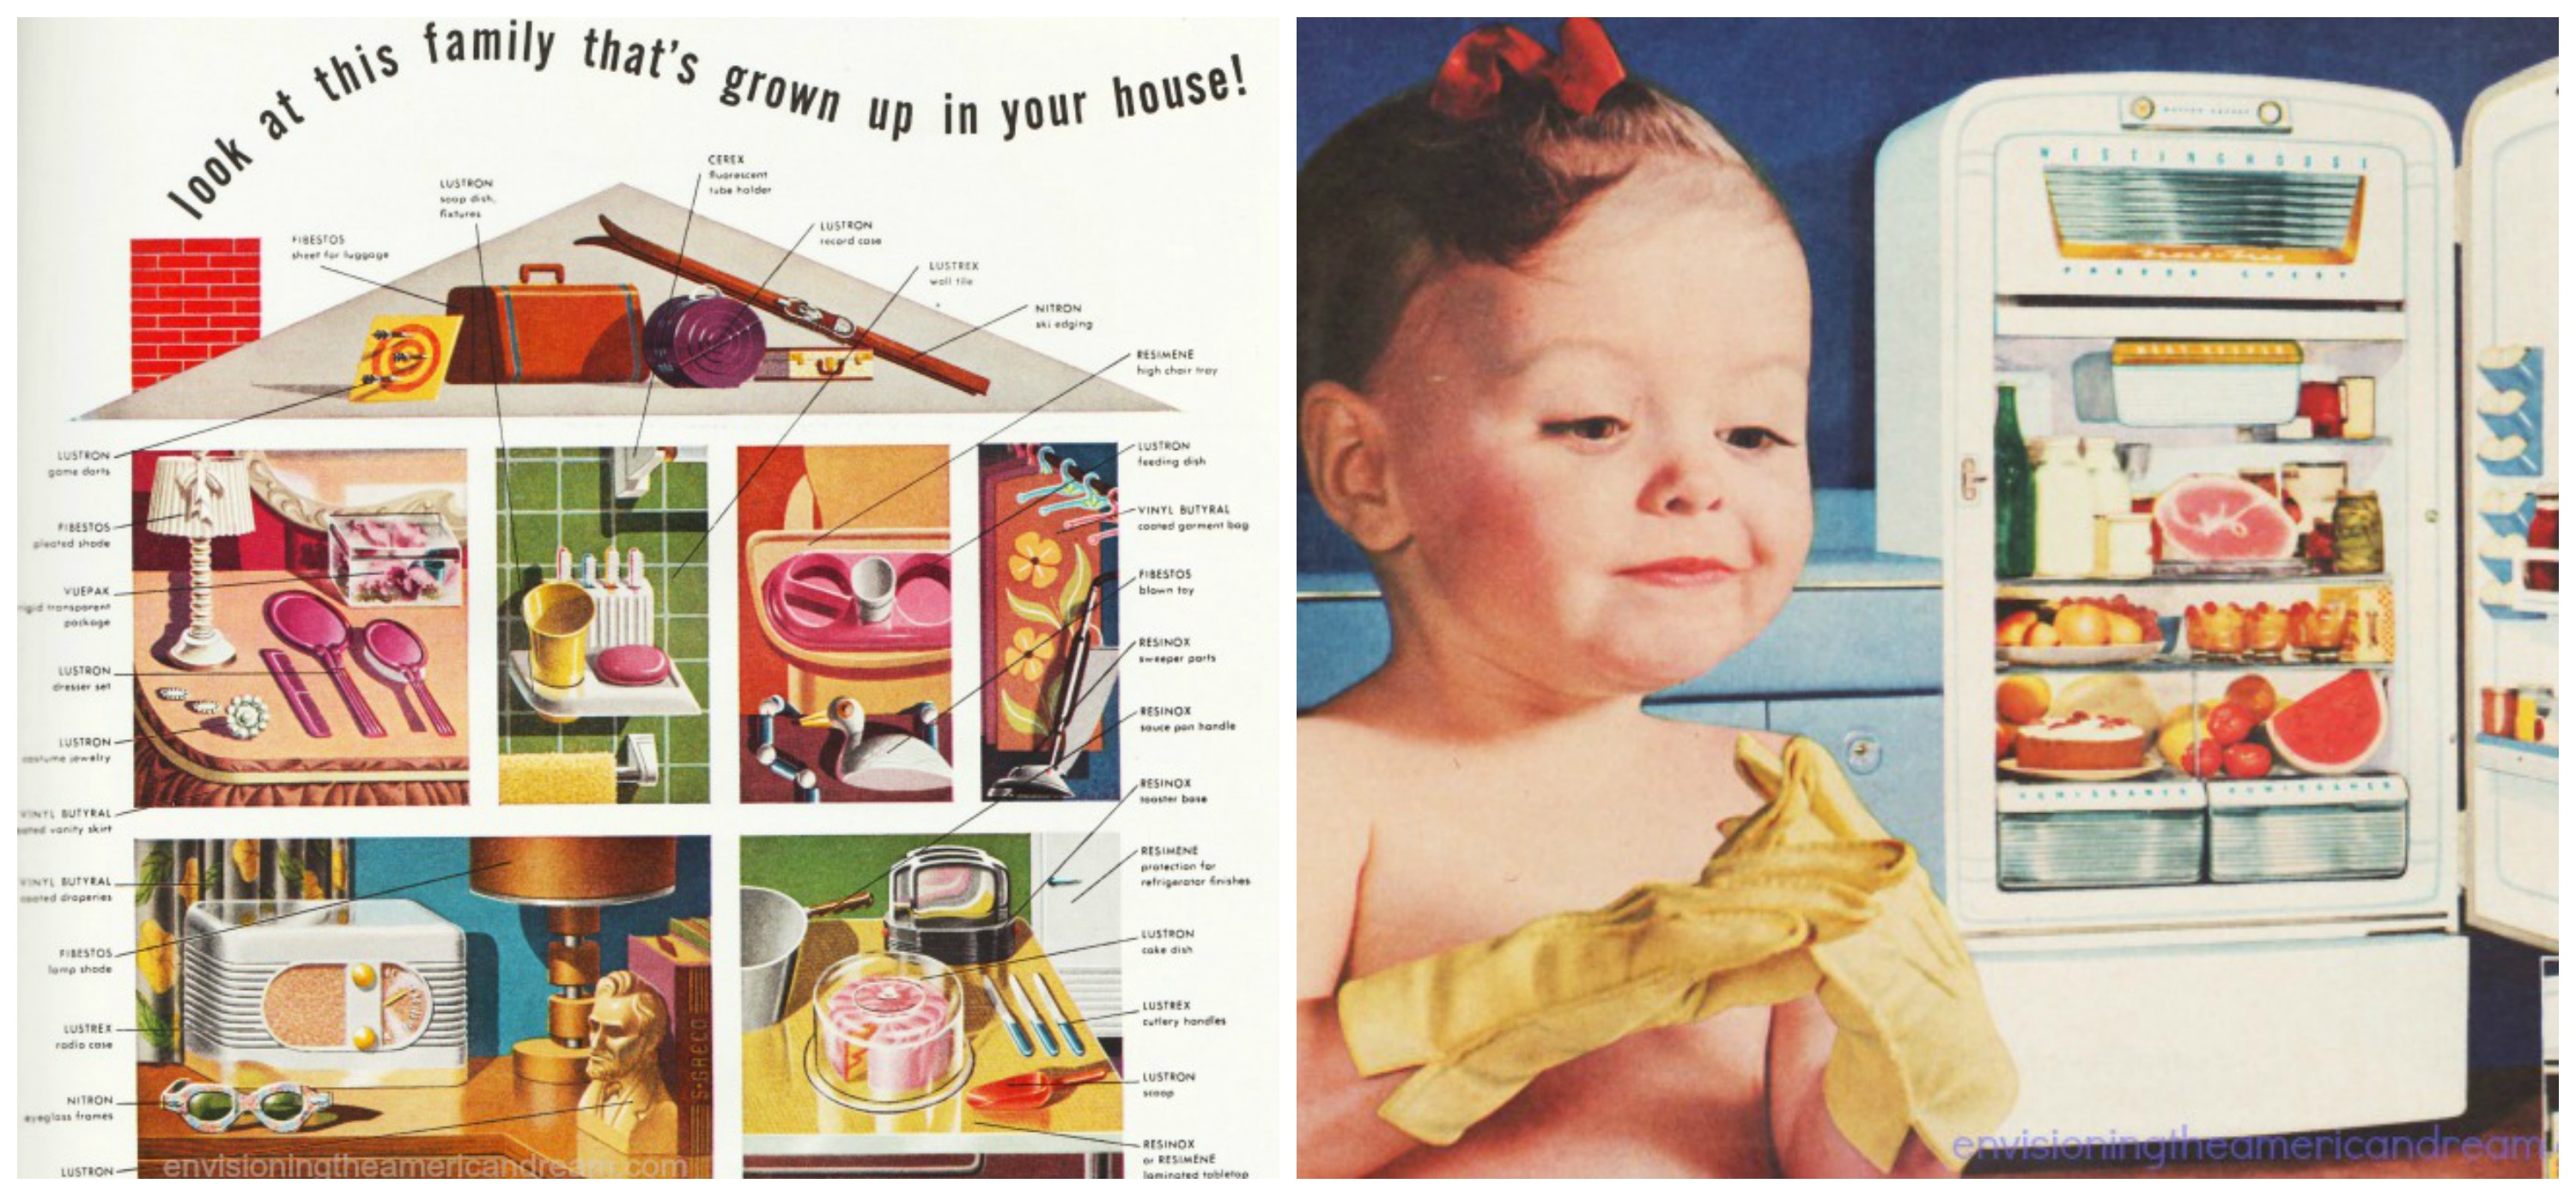 Vintage Advertising Envisioning The American Dream